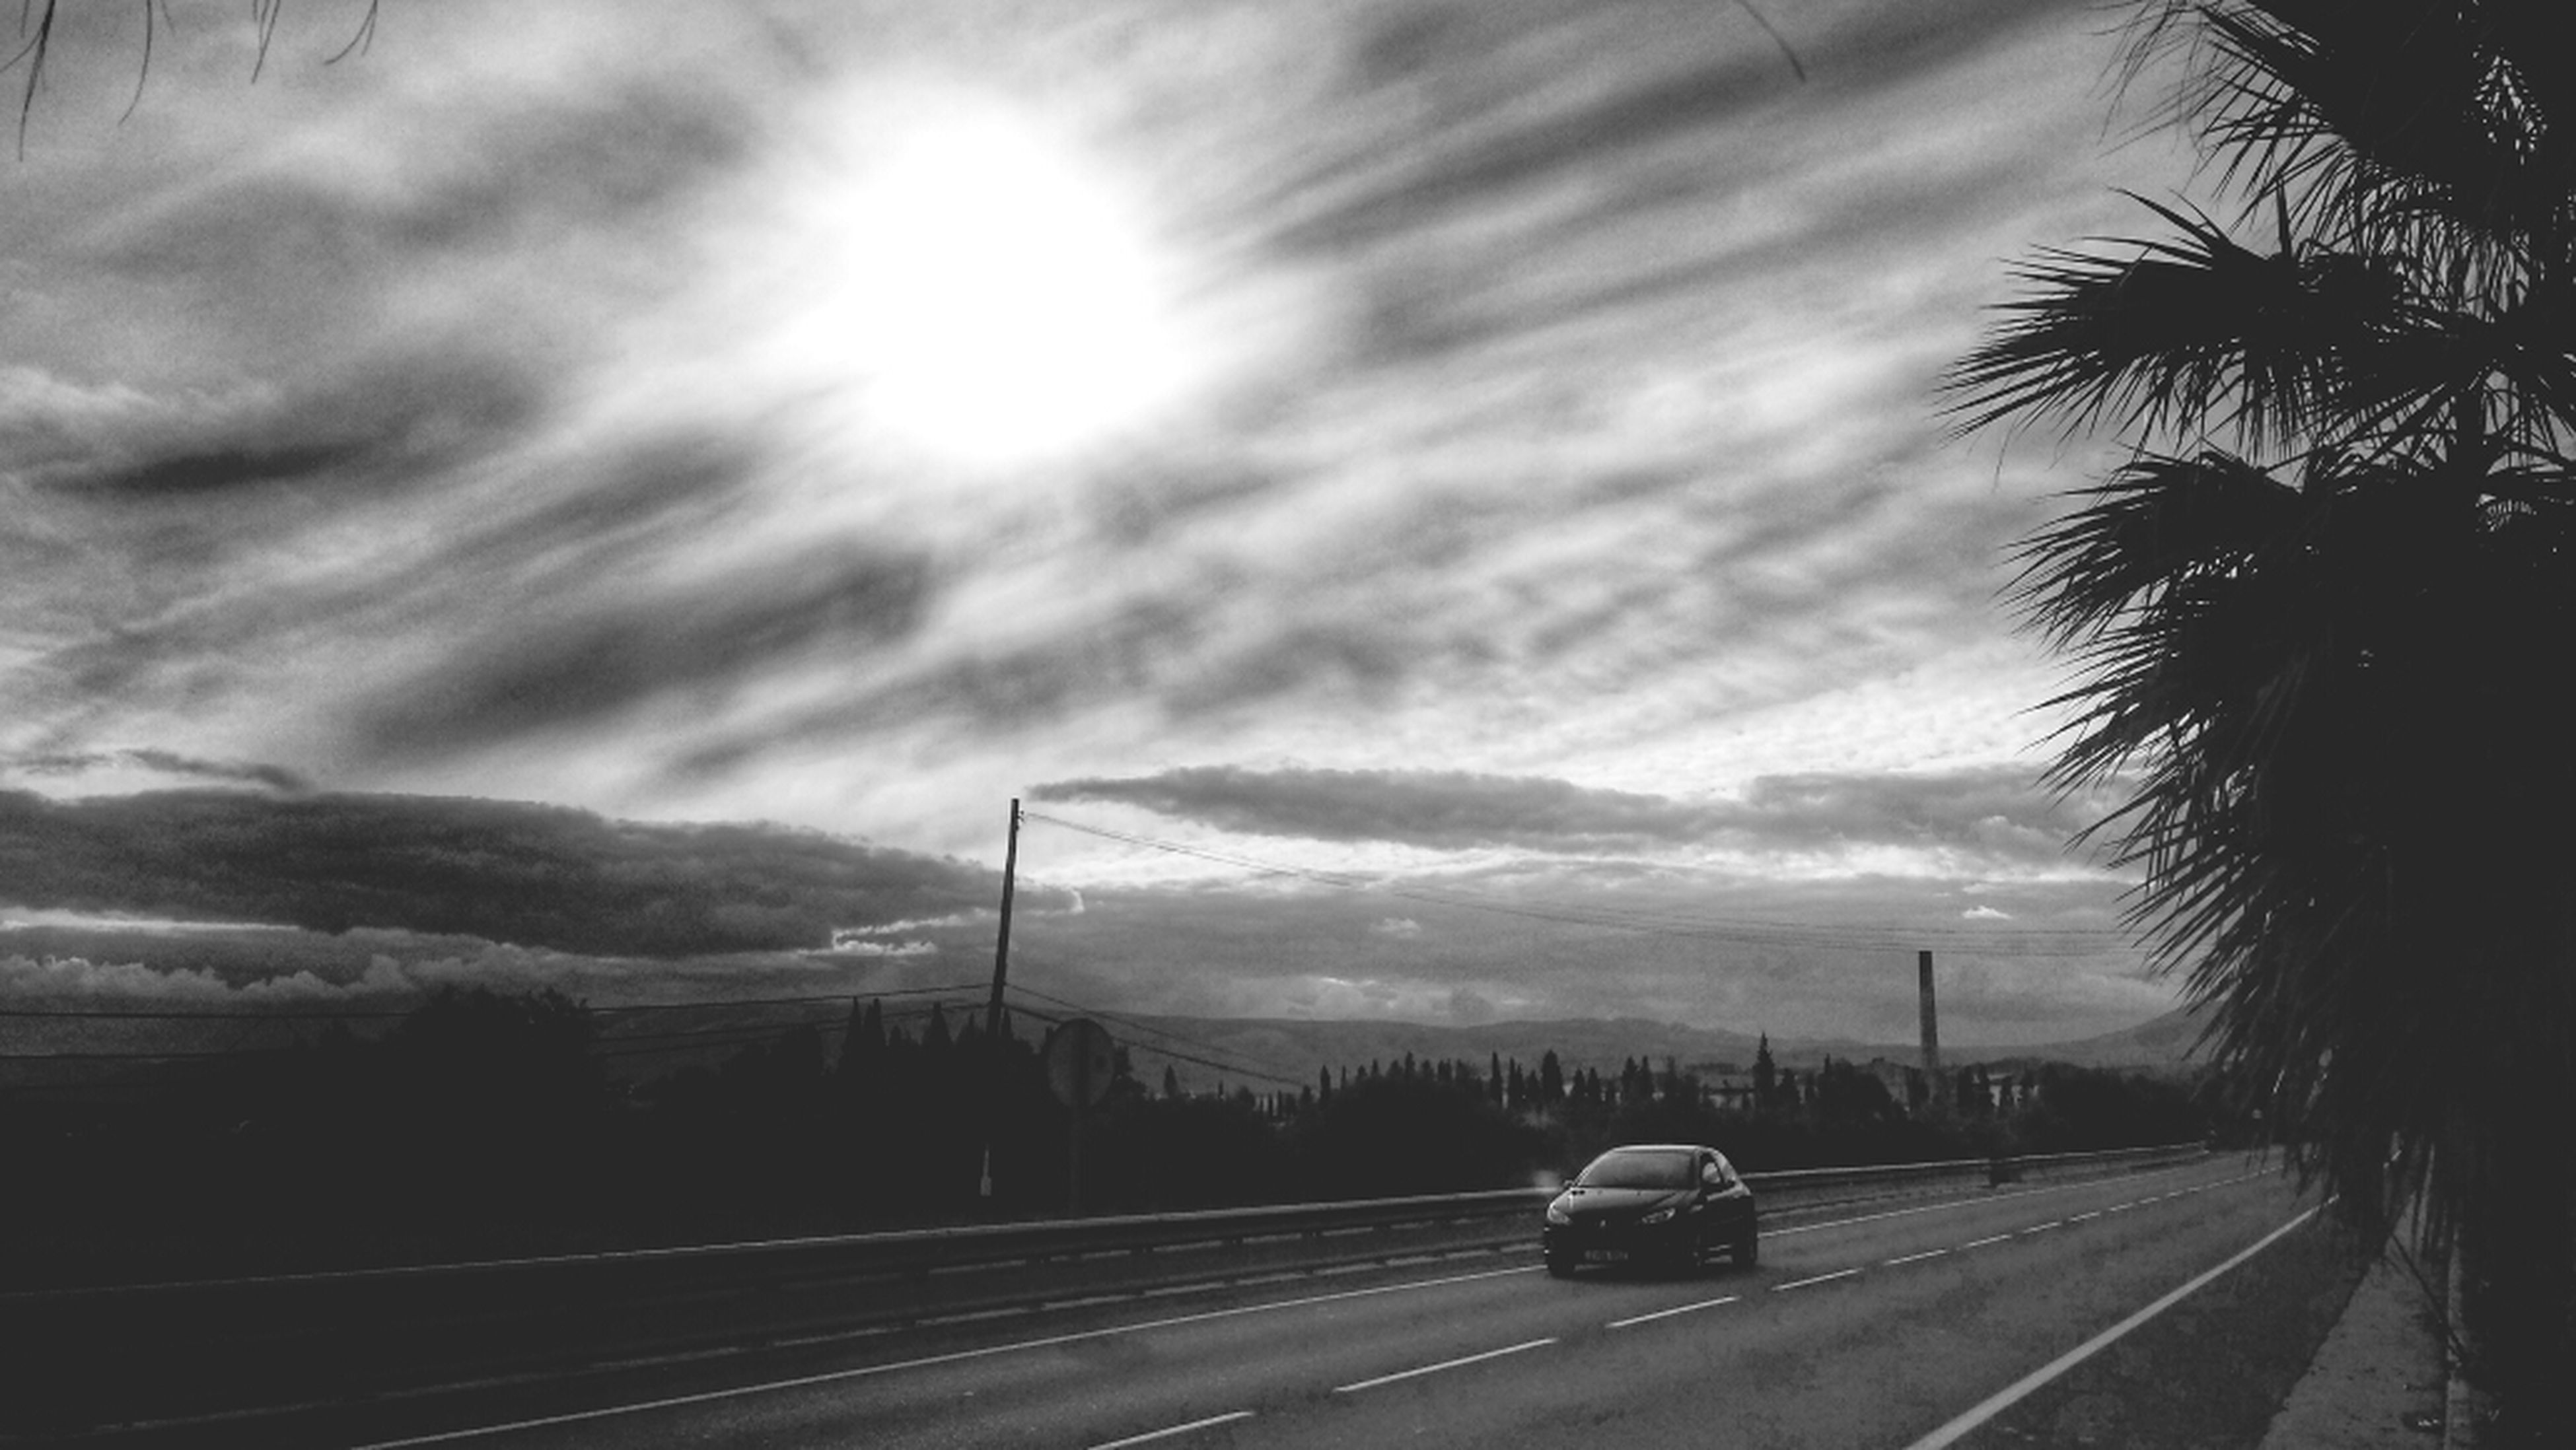 transportation, sky, road, cloud - sky, the way forward, cloudy, road marking, silhouette, car, cloud, tree, electricity pylon, street, railroad track, land vehicle, nature, diminishing perspective, connection, highway, mode of transport